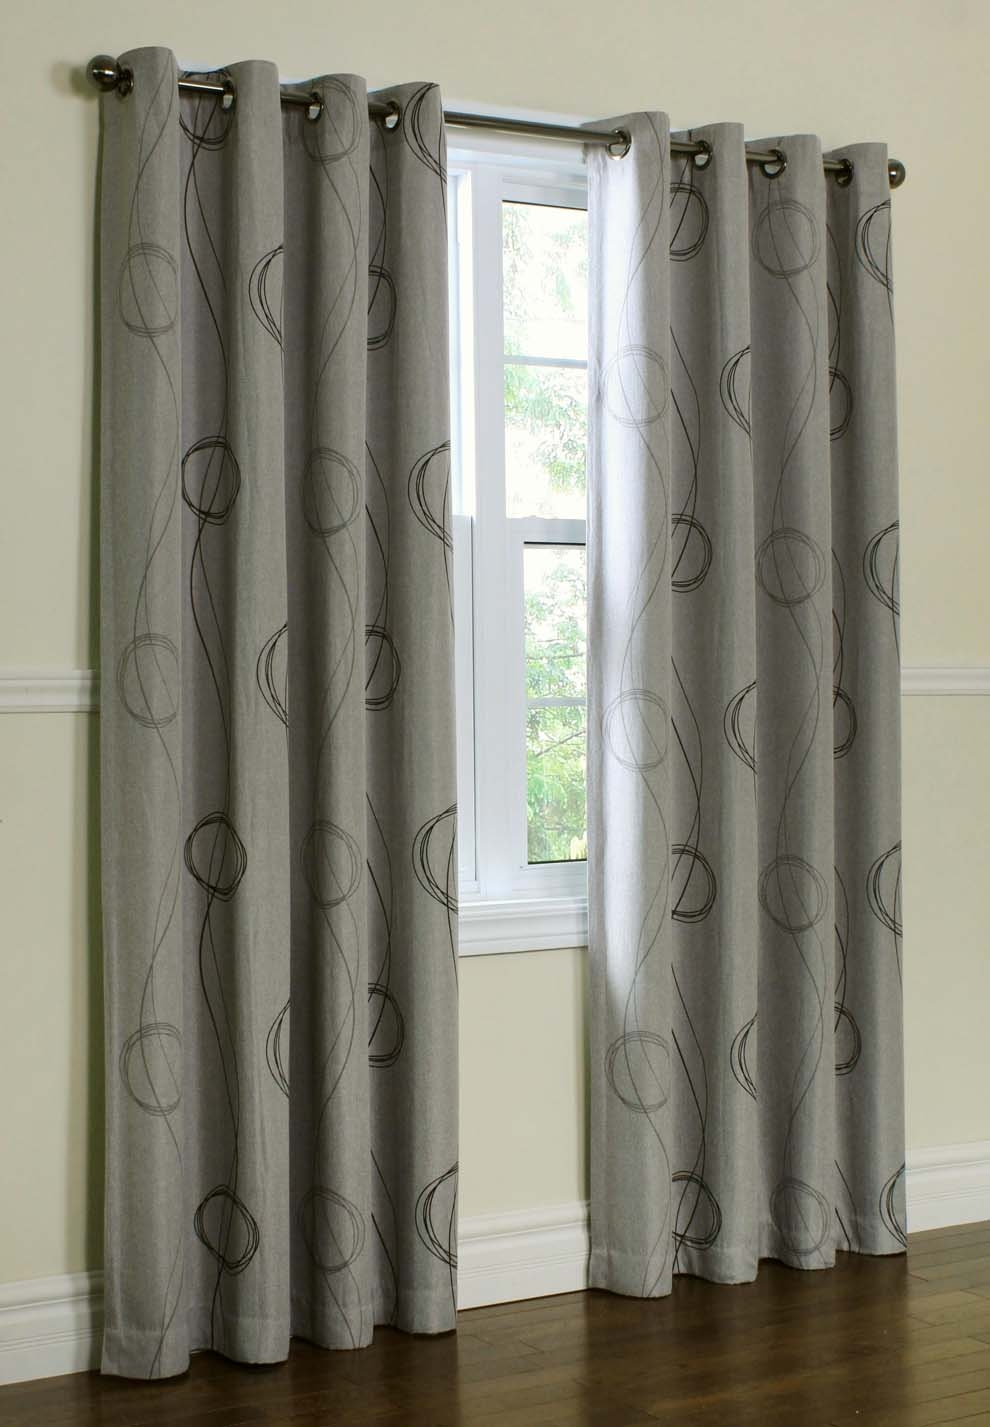 Free Fabric Samples Brook Blackout Thermal Grommet Top Curtains Throughout Thermal And Blackout Curtains (Image 12 of 15)